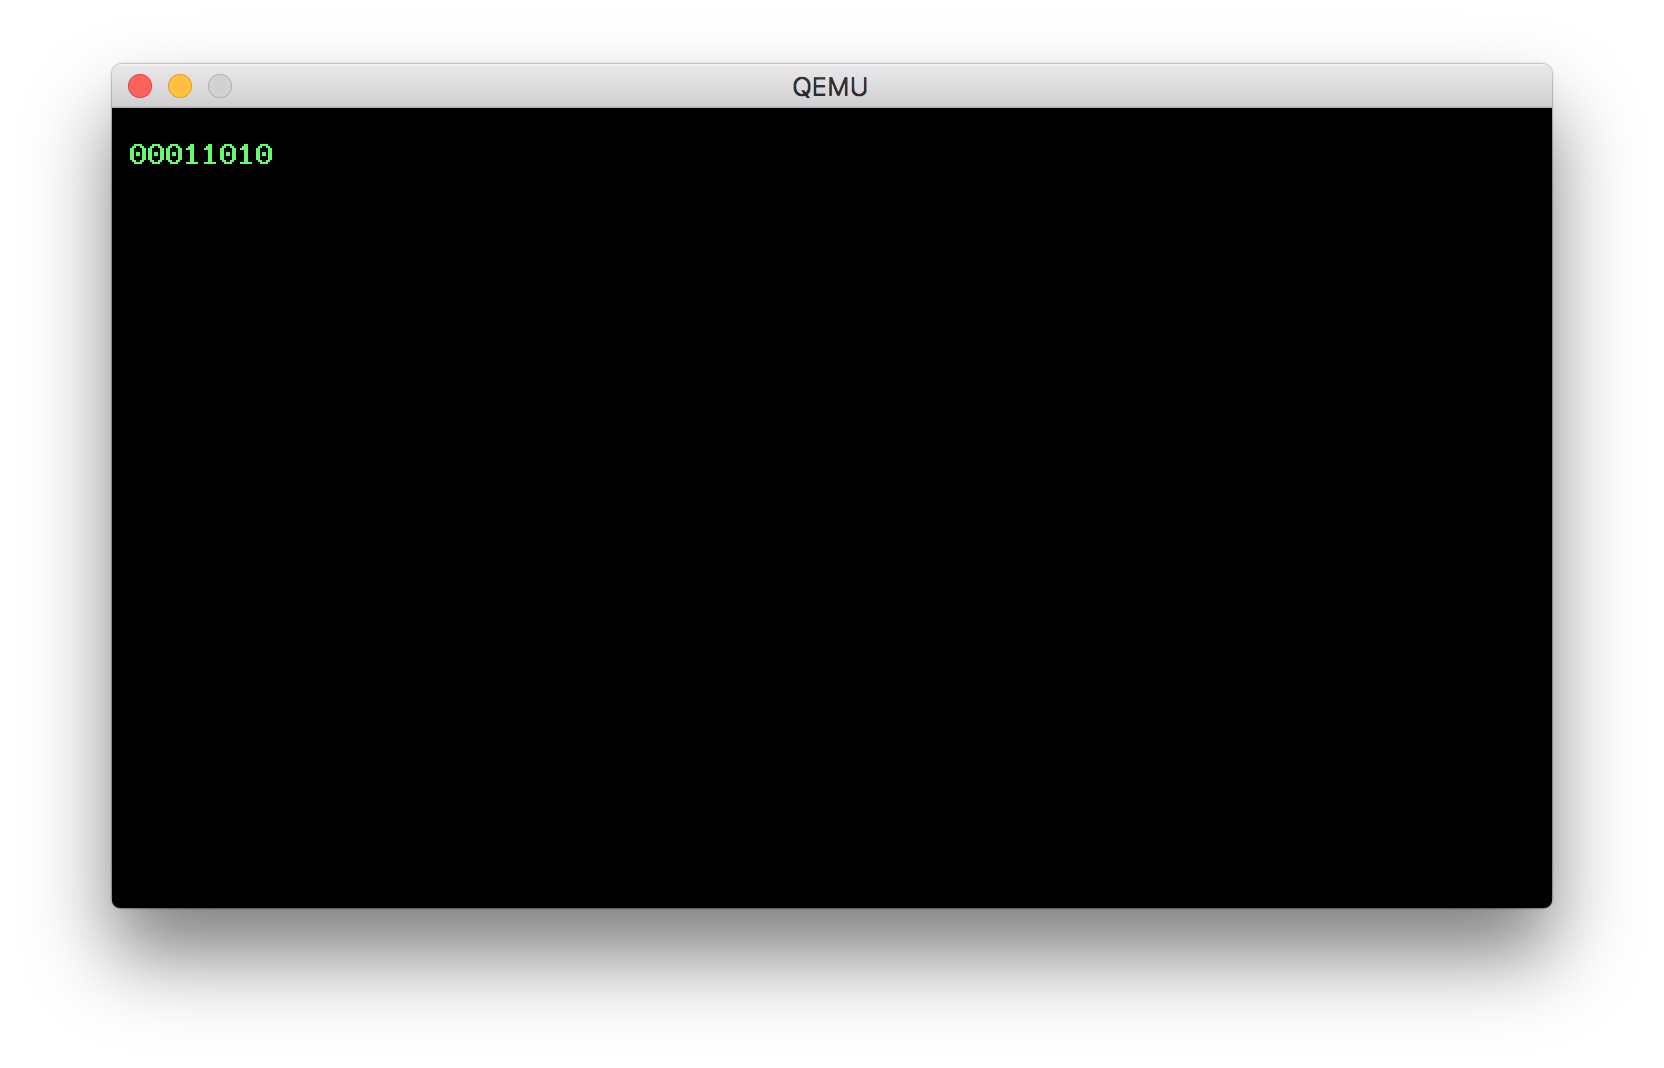 Number formatting QEMU screenshot